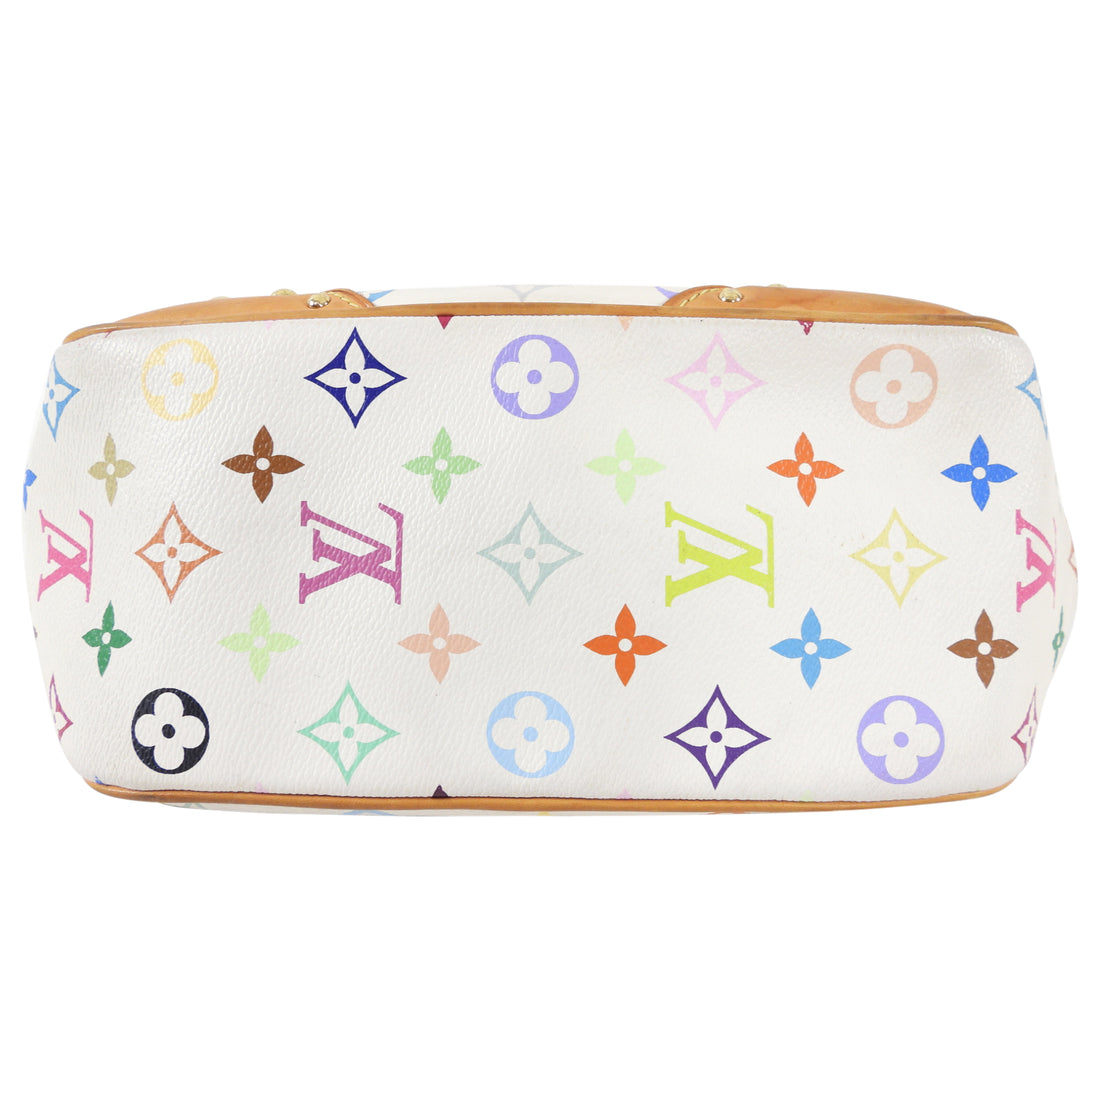 Louis Vuitton Murakami Multicolor White Marilyn Shoulder Pochette Bag